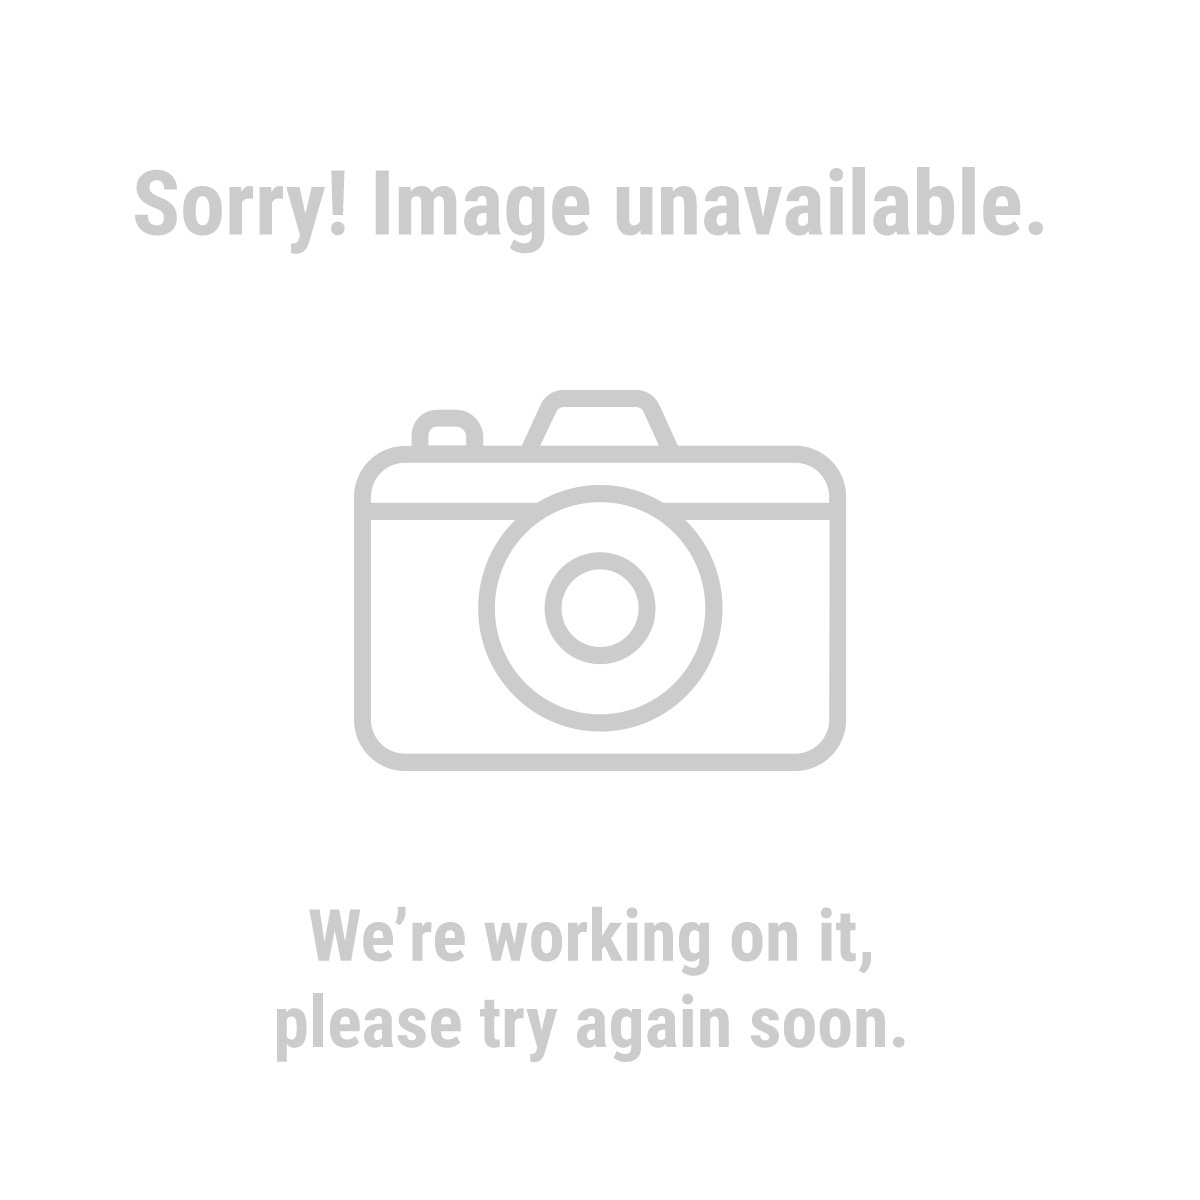 Haul-Master® 62837 400 lb. Receiver-Mount Motorcycle Carrier